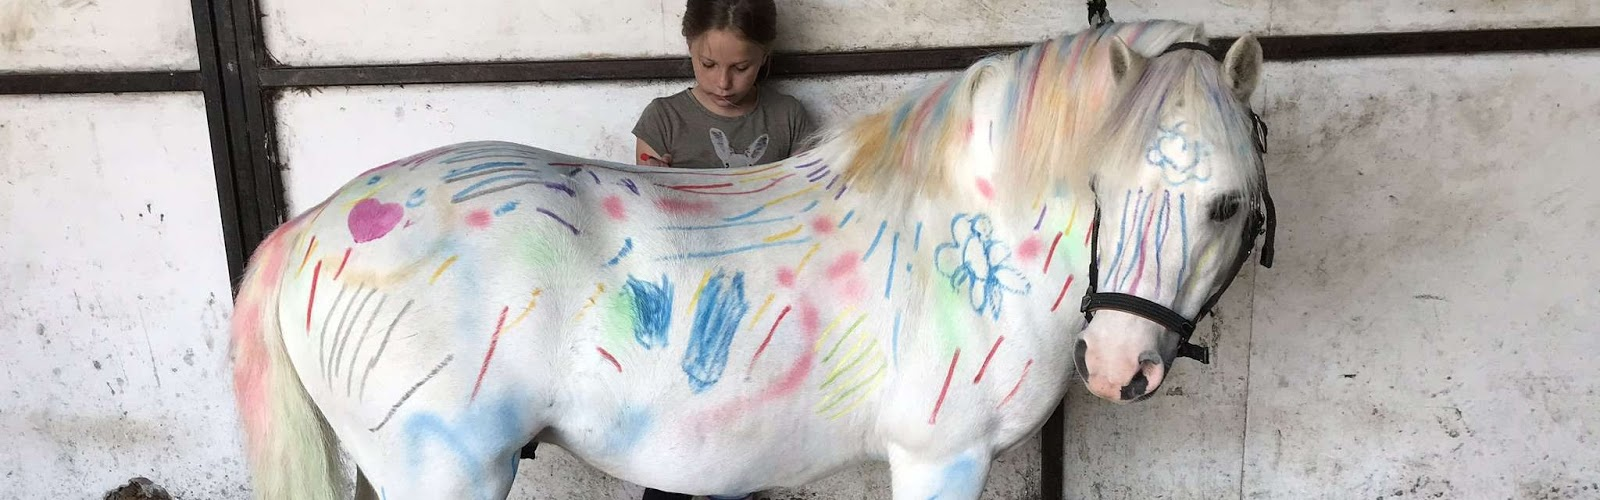 Girl Drawing on Pony